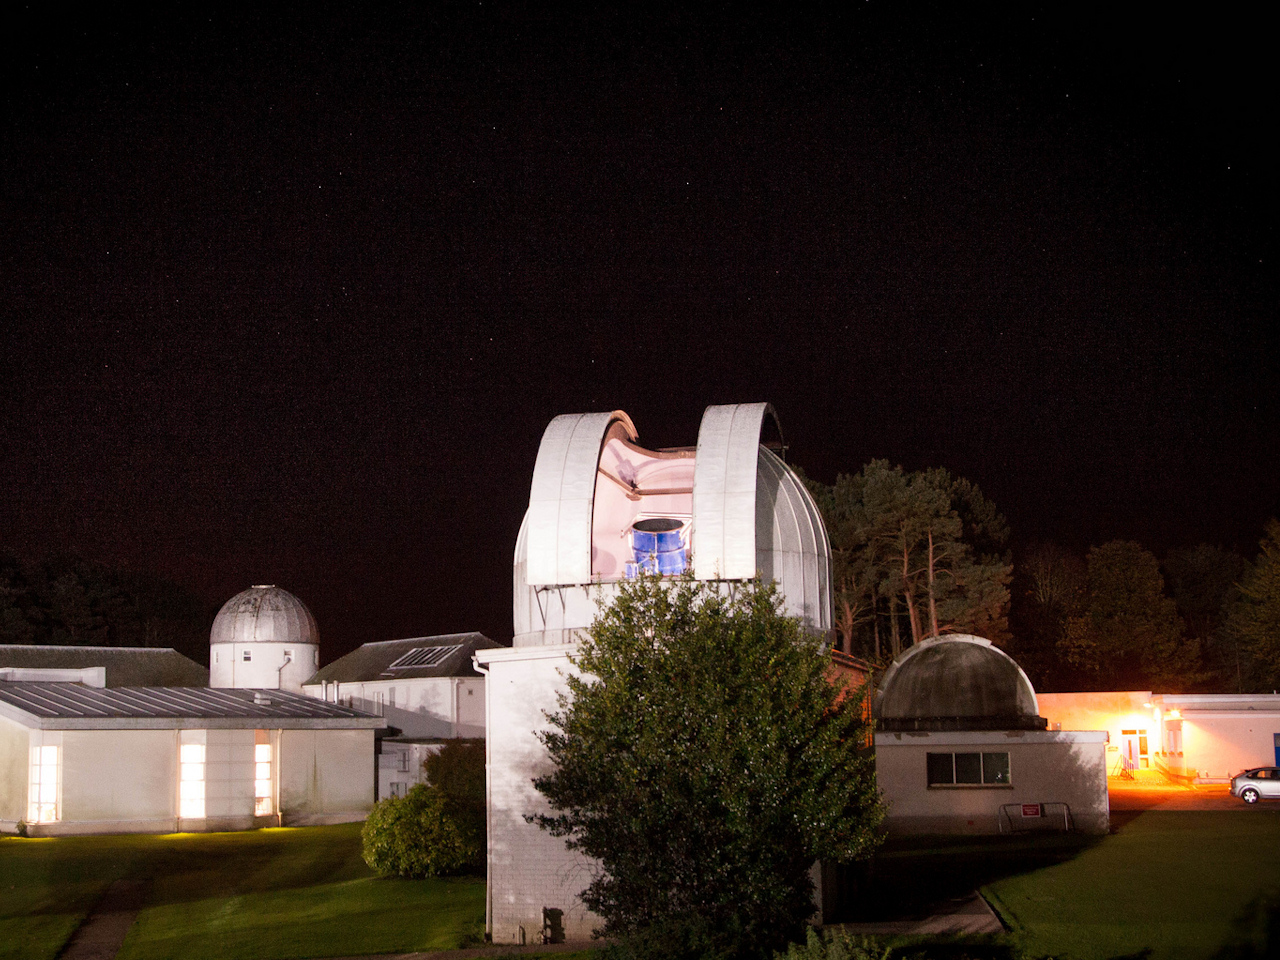 The Gregory telescope at the University Observatory: copyright Jan Boelsche